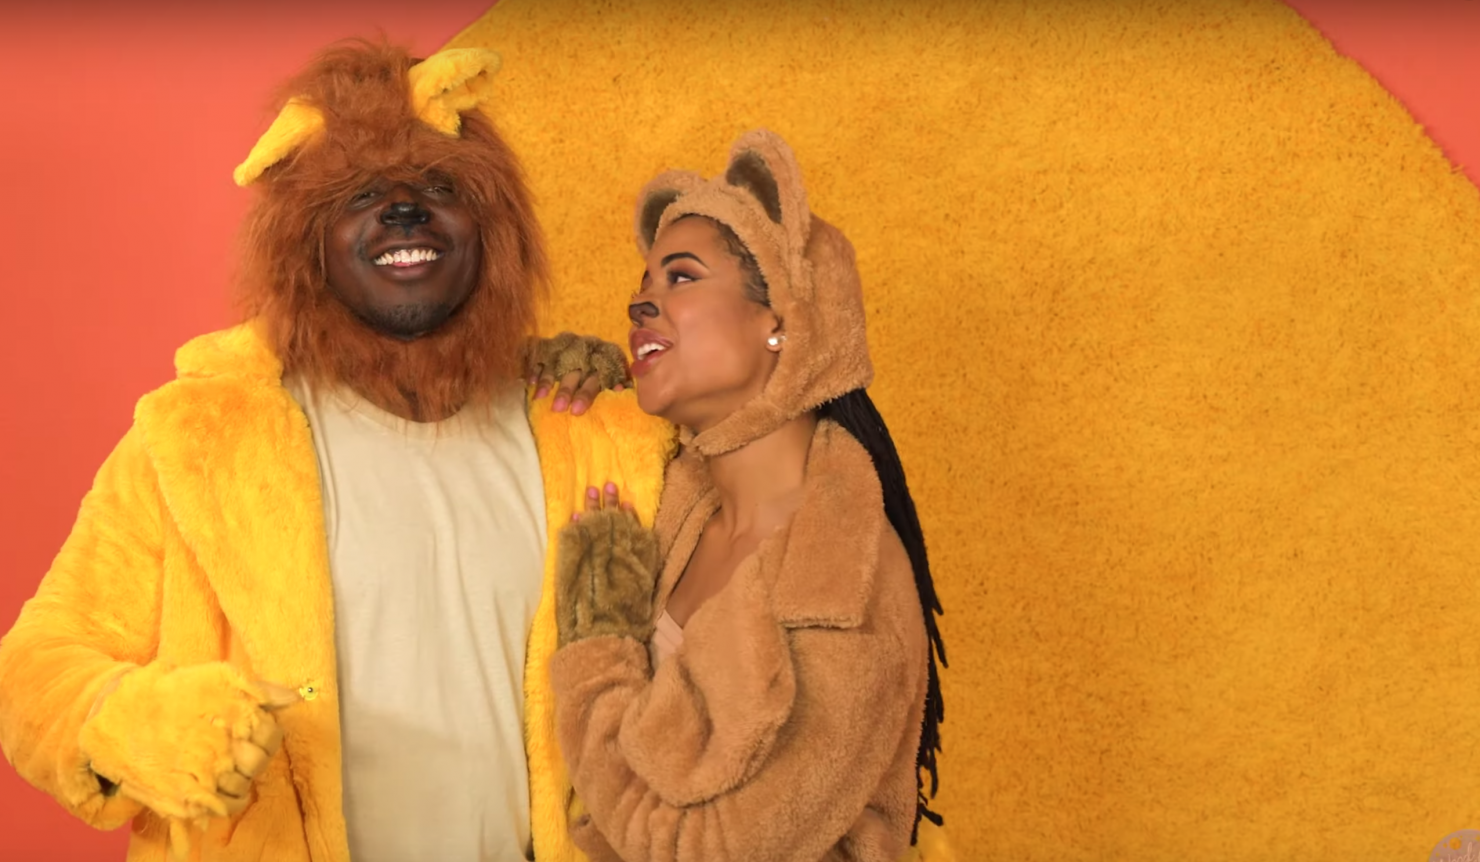 Animal Fur Clithing Porn the loin king' porn parody premieres alongside 'lion king